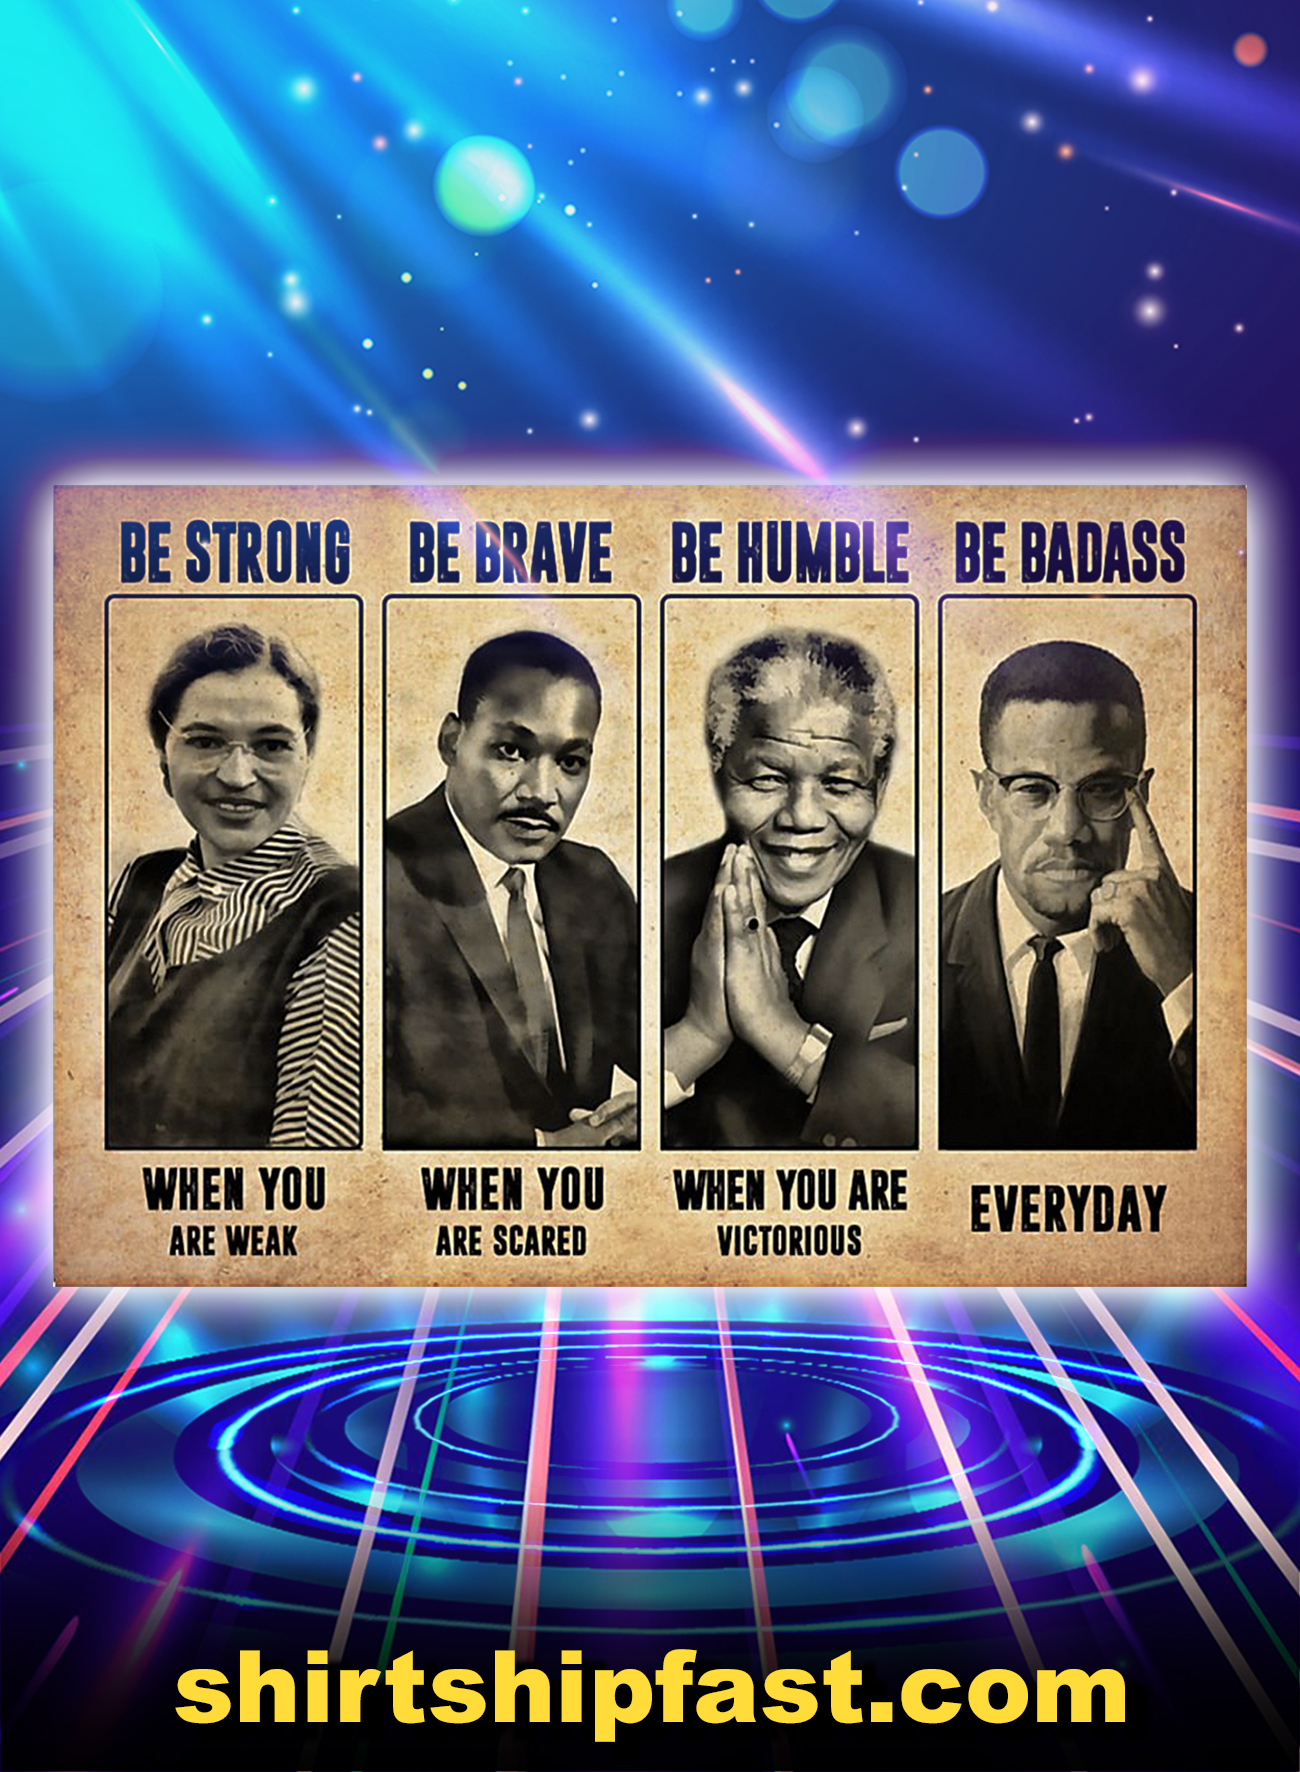 The famous people be strong be brave be humble be badass poster - A1